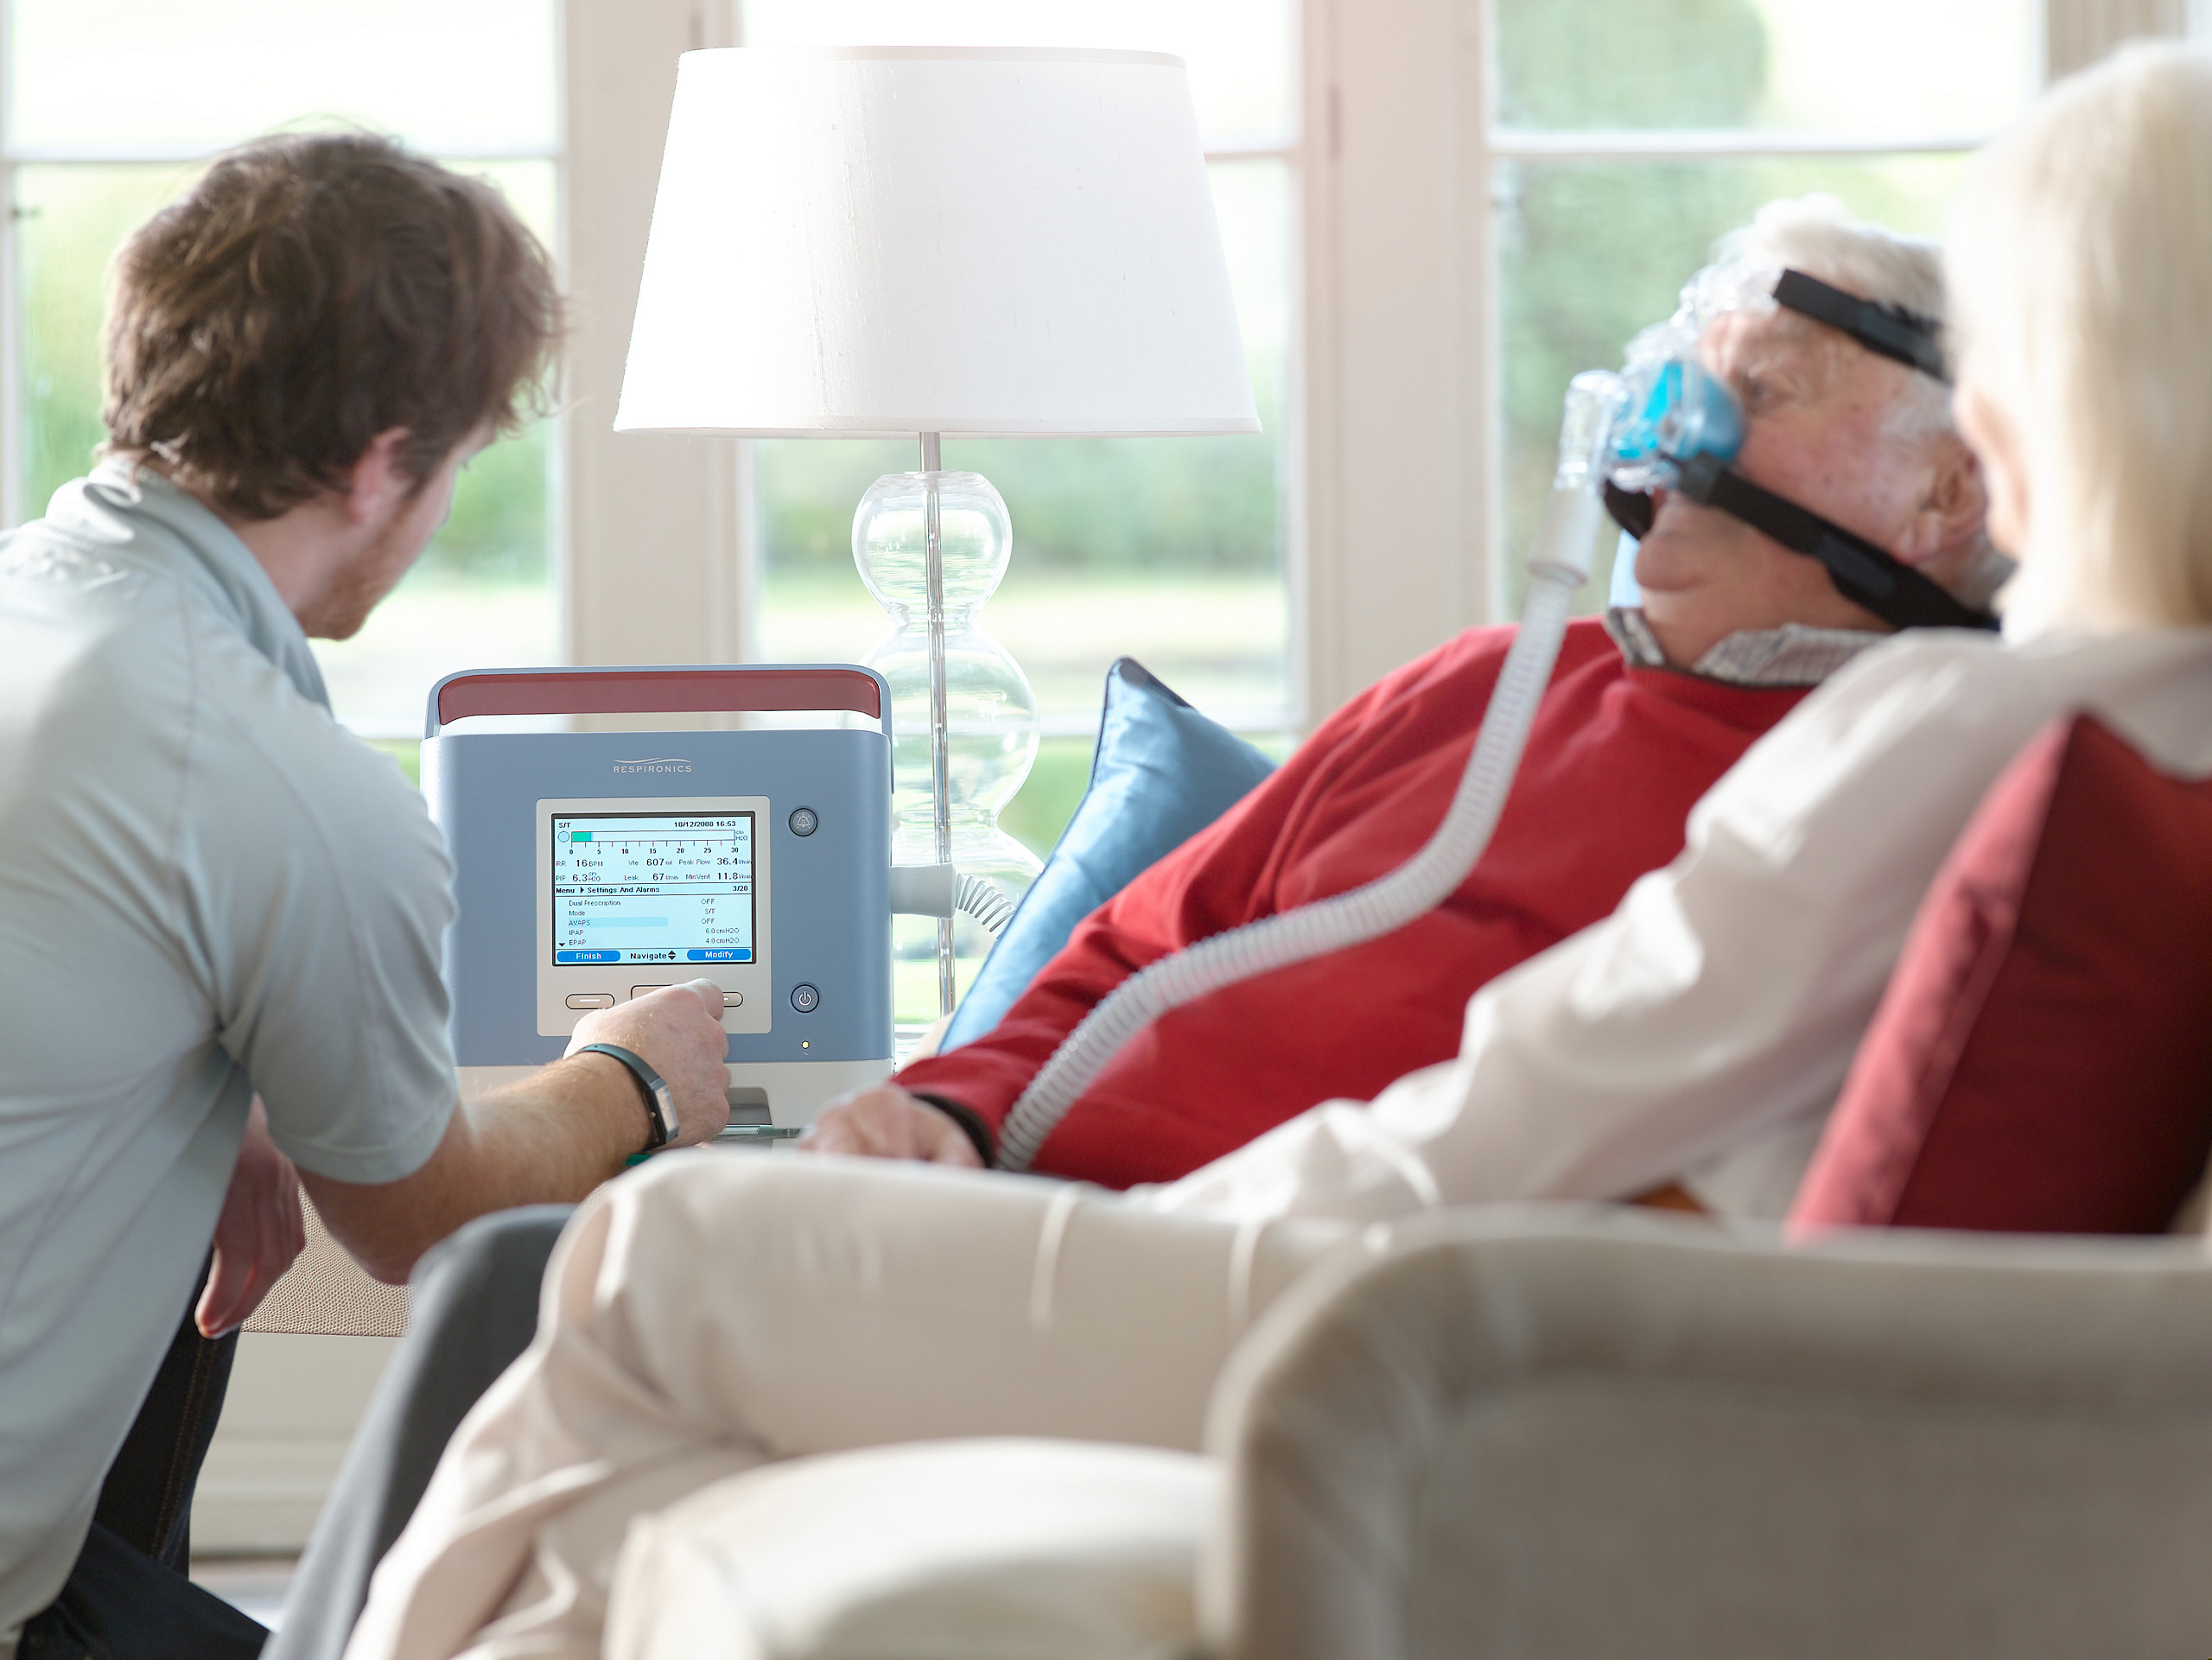 Philips Trilogy ventilator with COPD patient at home - Media library |  Philips